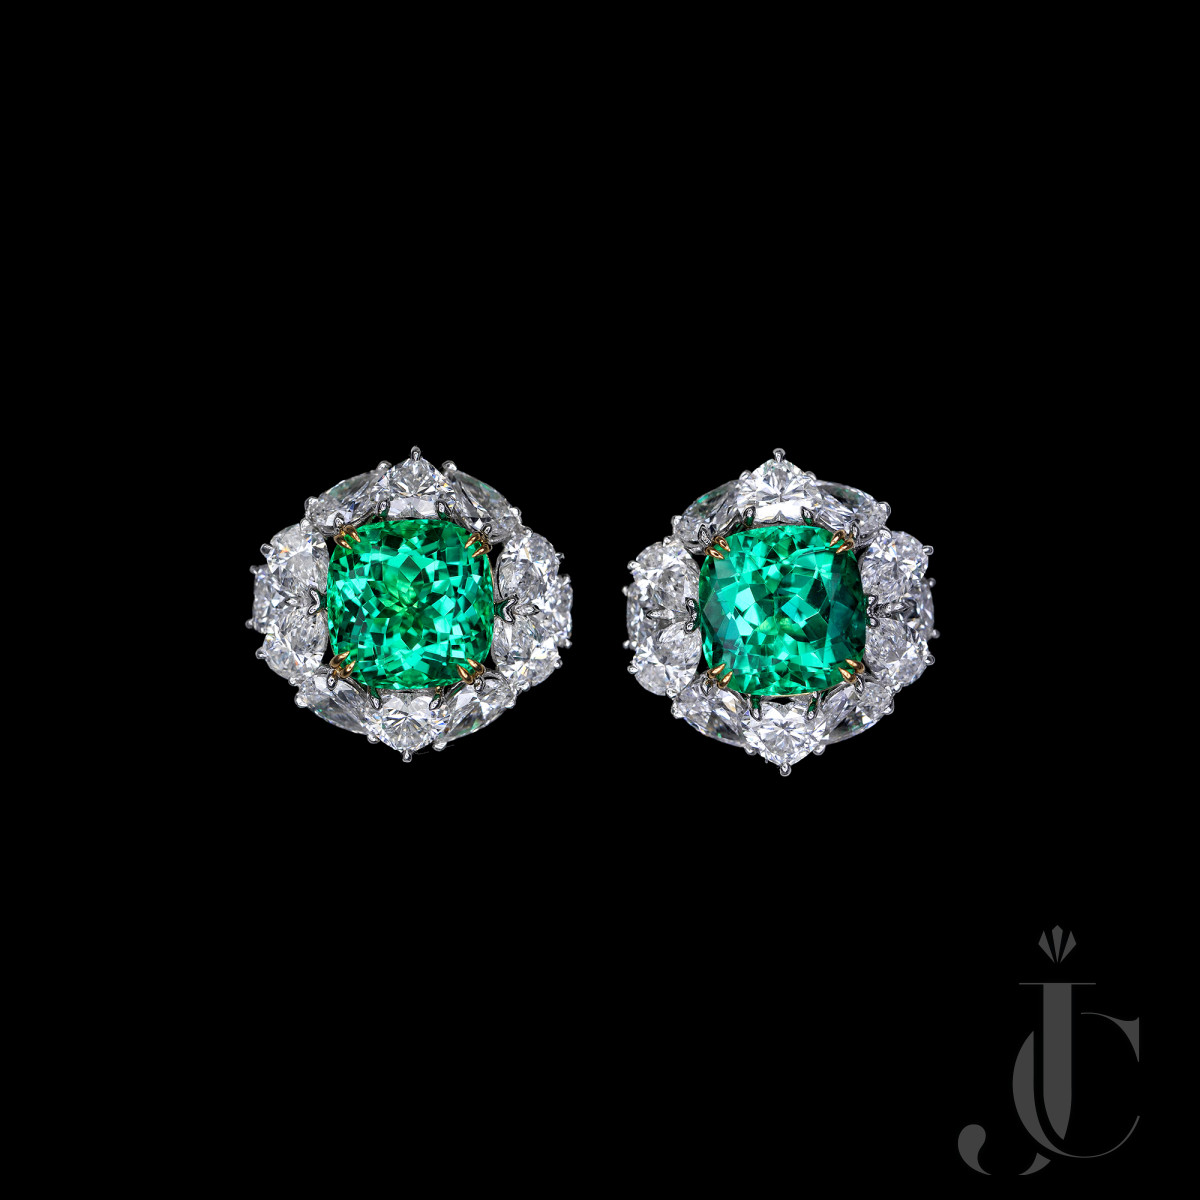 Over 6 cts each Untreated Vivid Green Columbian Emerald Diamond Earrings, SSEF/AGL certs available